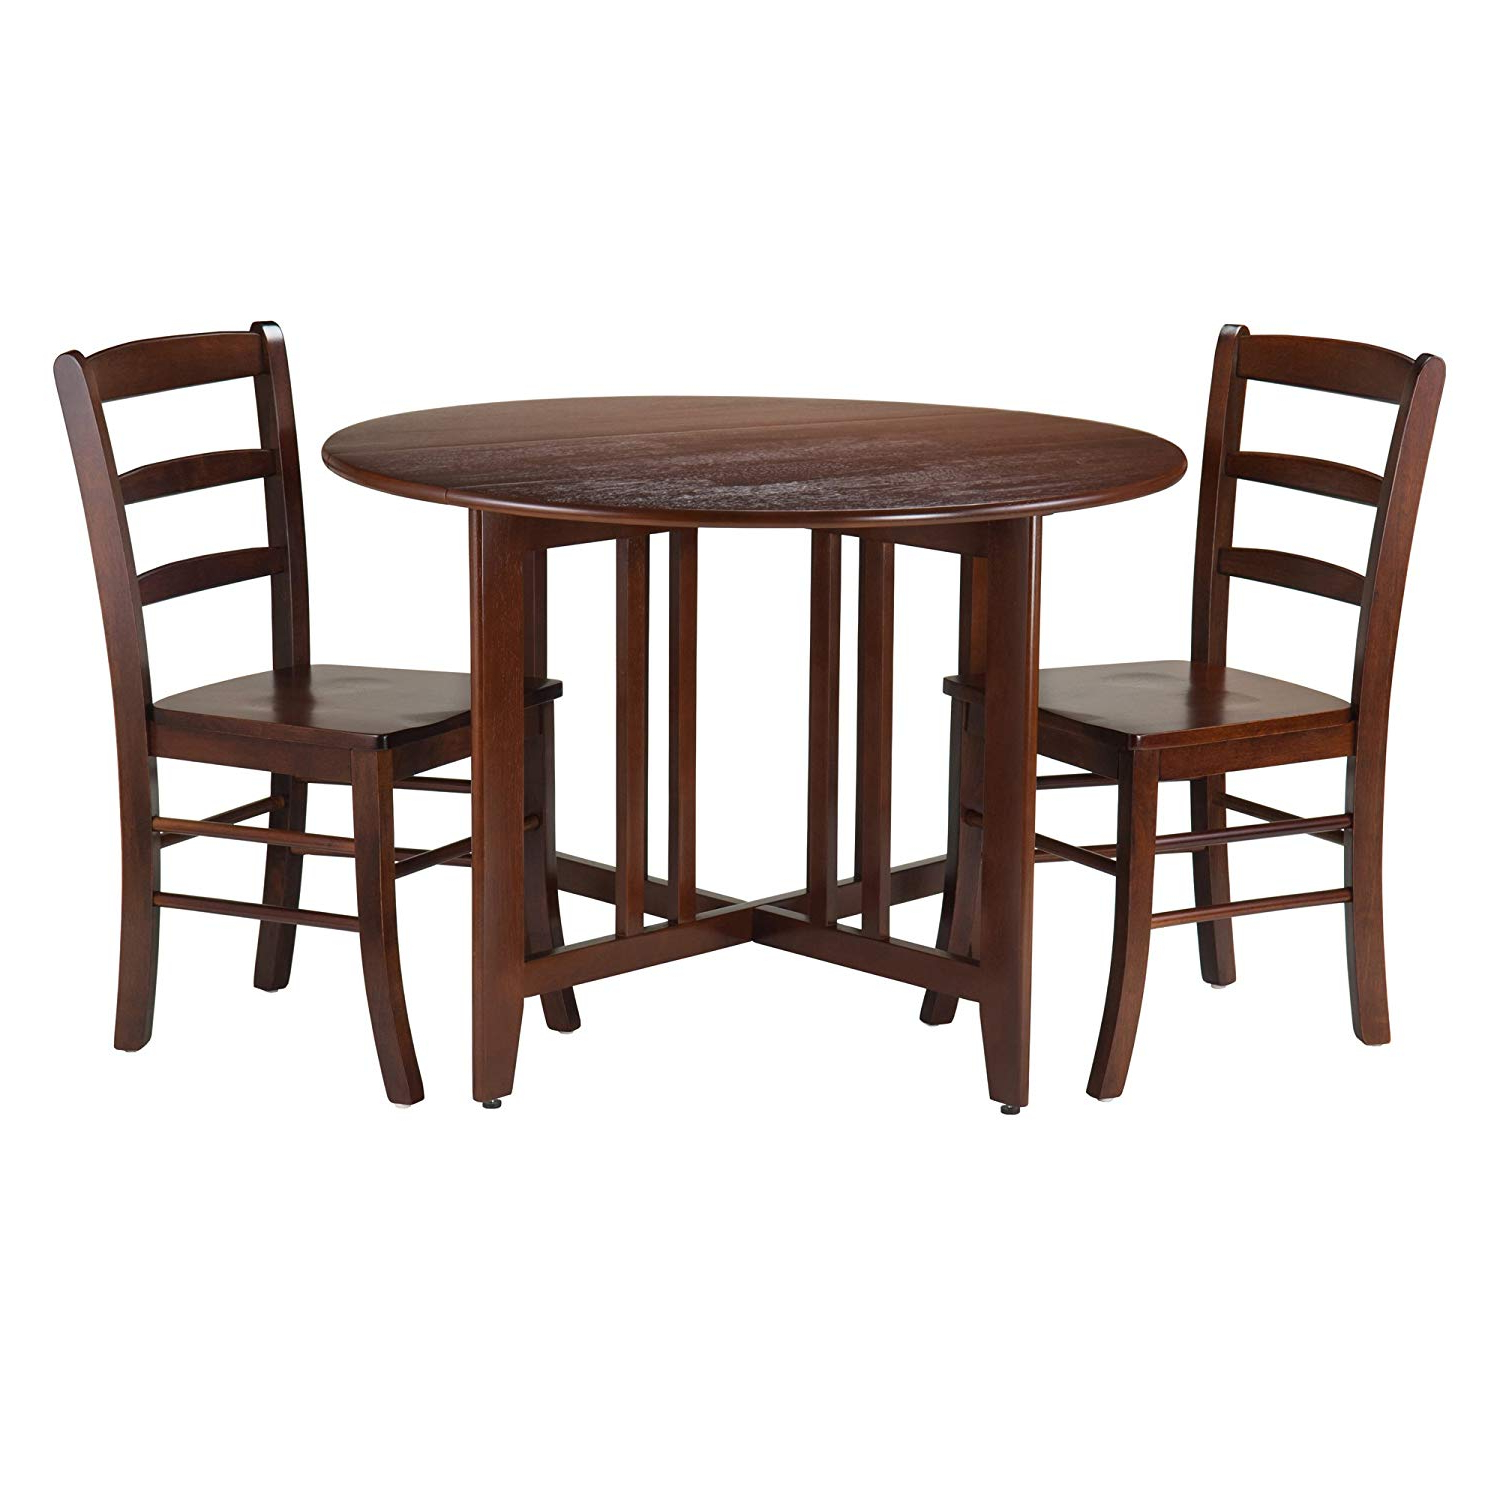 Most Up To Date Transitional 3 Piece Drop Leaf Casual Dining Tables Set For Winsome 3 Piece Alamo Round Drop Leaf Table With 2 Ladder Back Chairs, Brown (View 13 of 30)